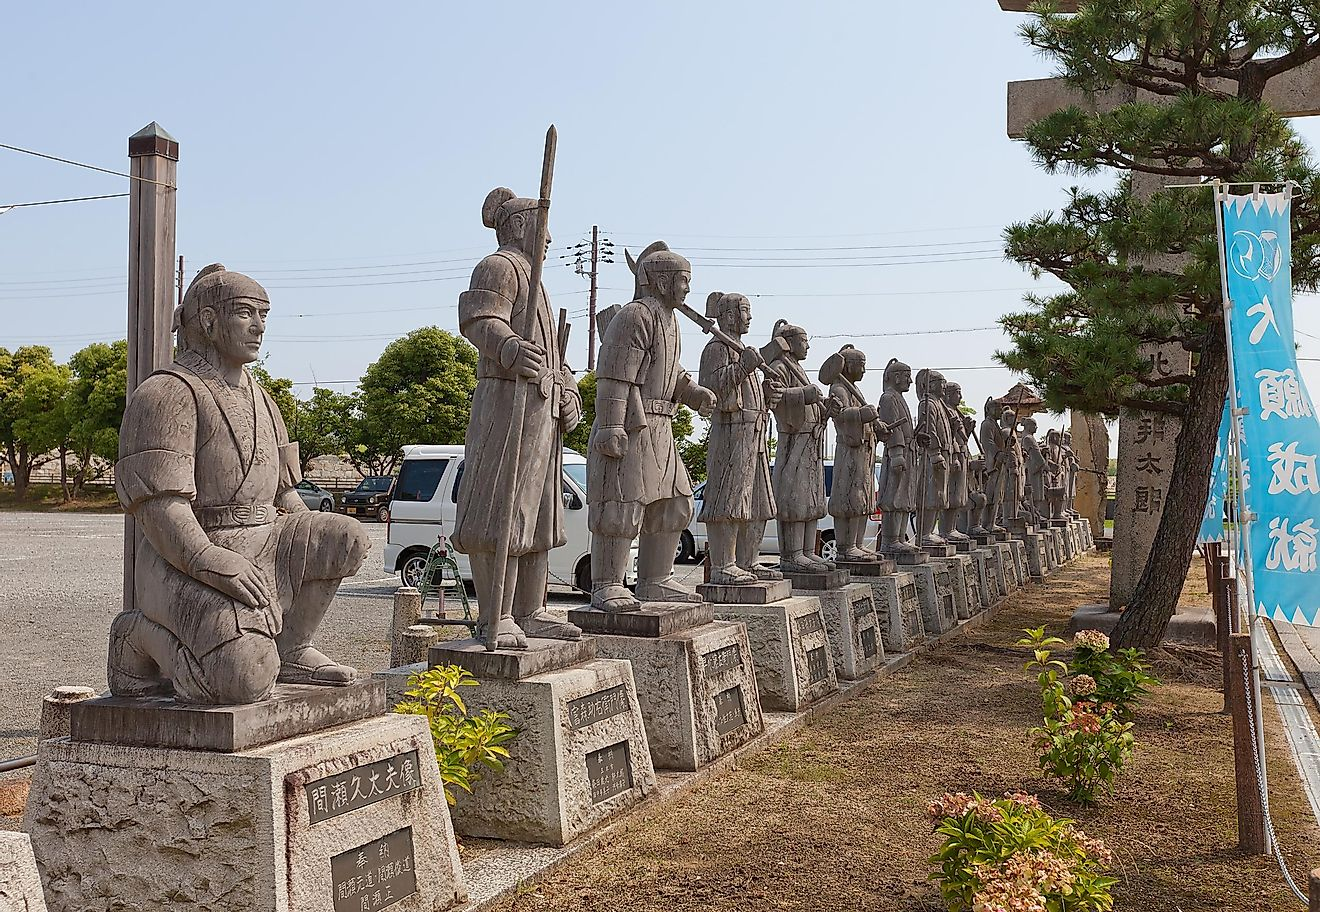 AKO, JAPAN - JULY 18, 2016: Statues of famous 47 ronin in the Oishi Shrine.  Image credit: Joymsk140 / Shutterstock.com